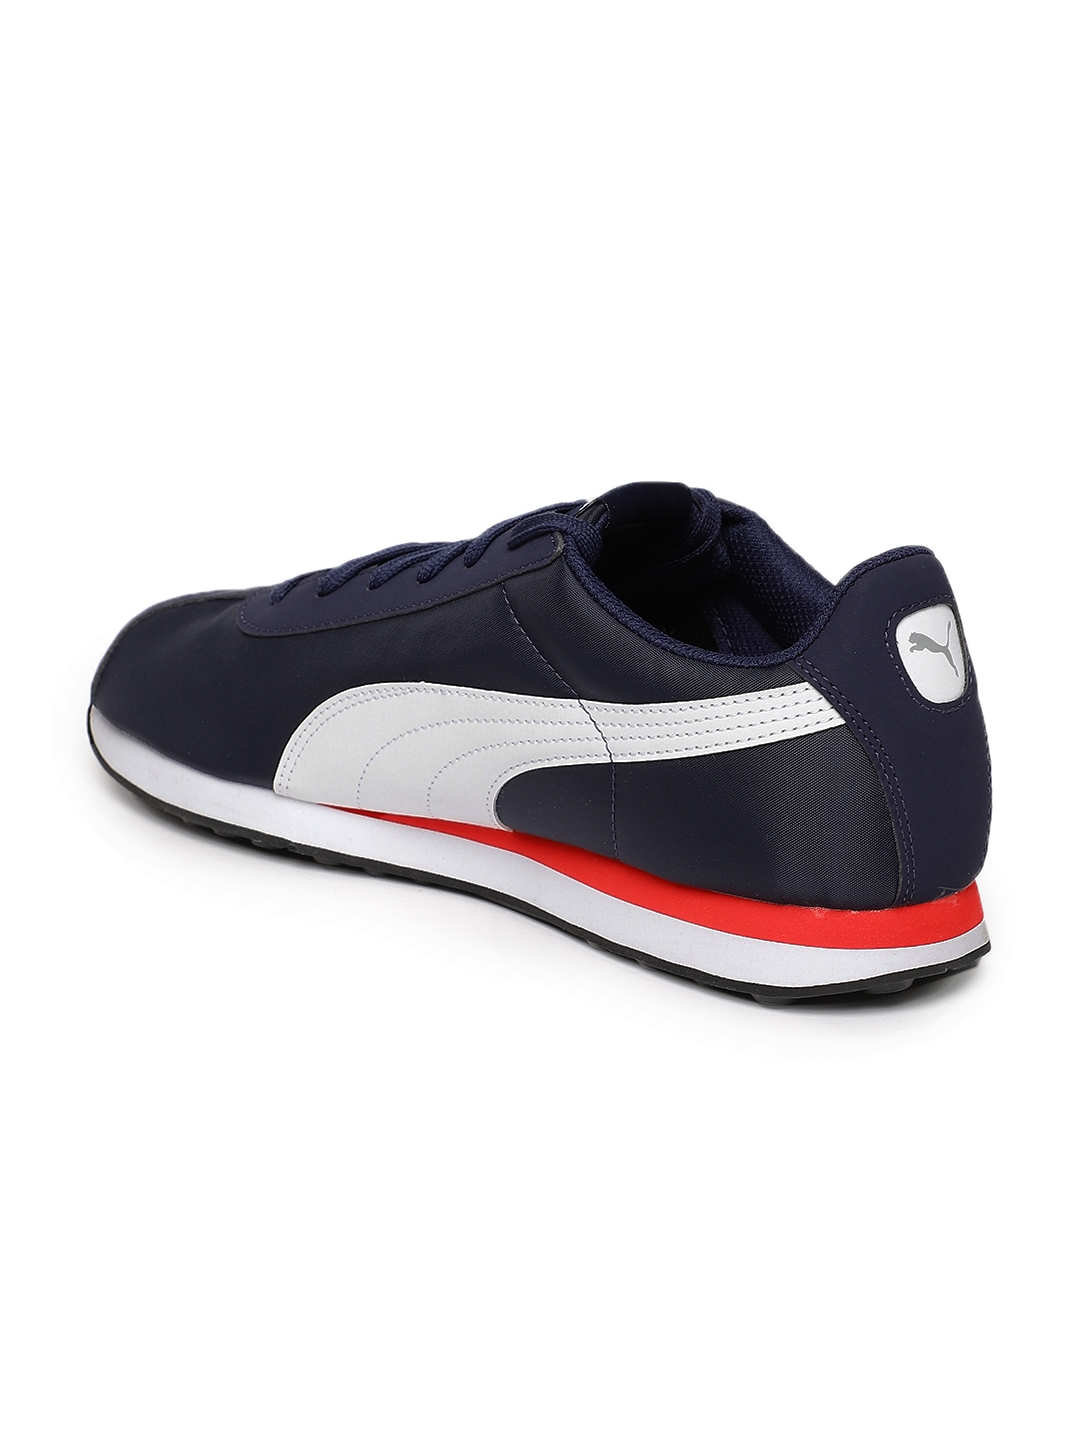 678ab503b08 Buy Puma Men Navy Turin NL Sneakers - Casual Shoes for Men 4426015 ...